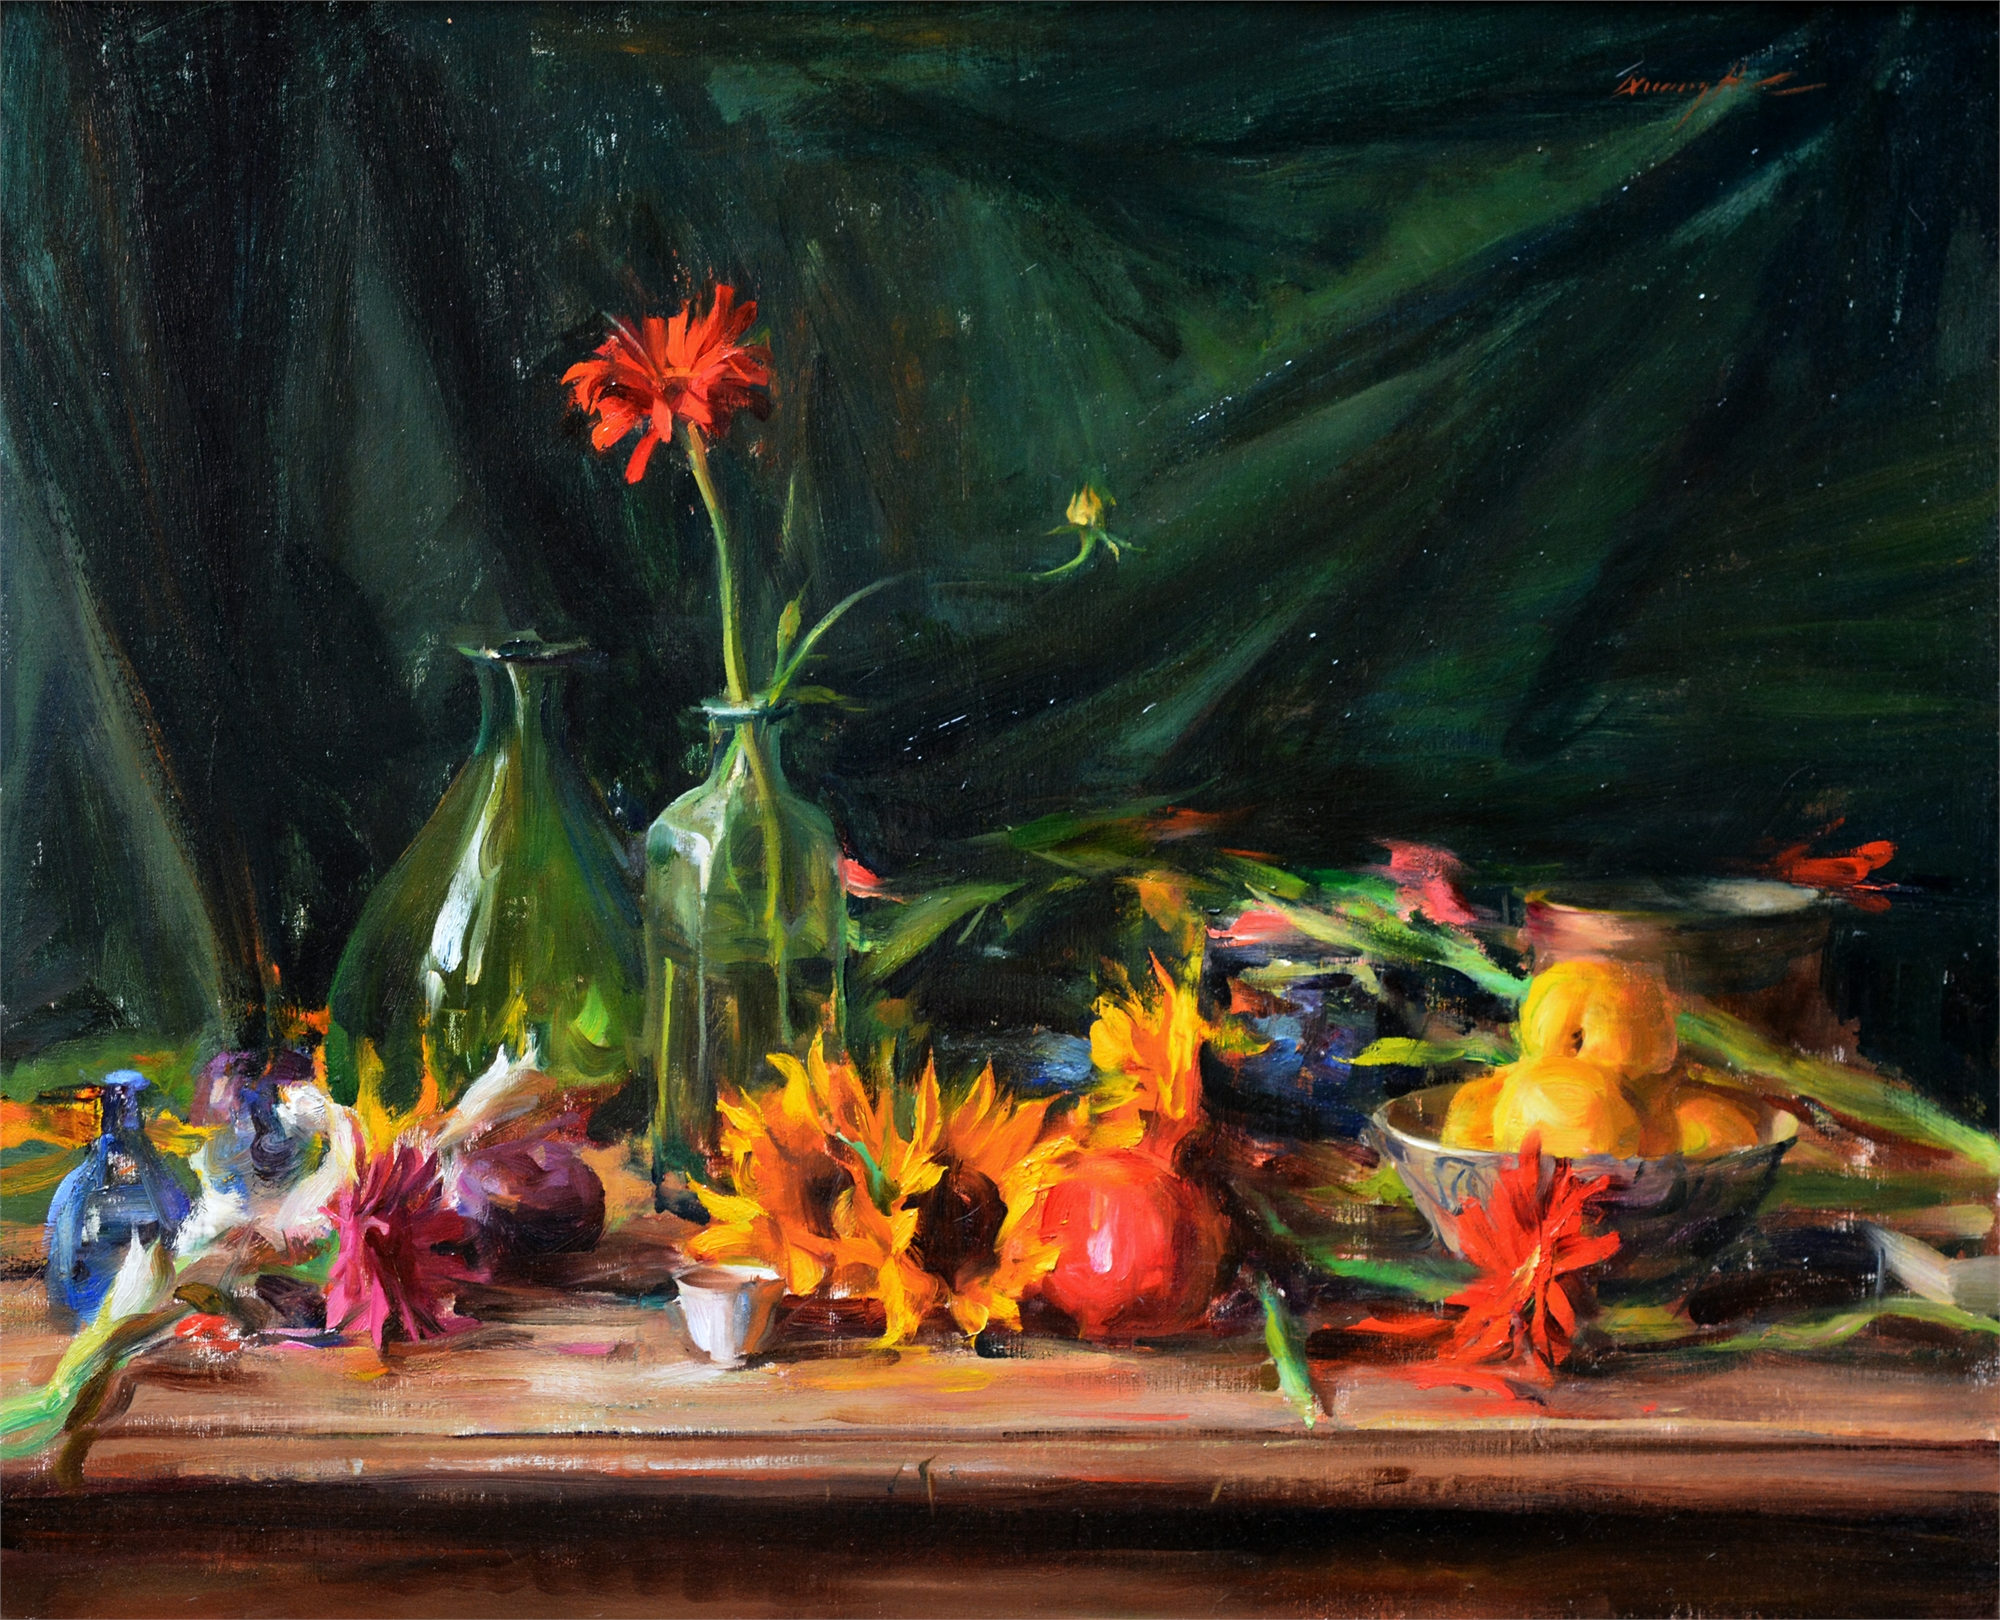 Arrangement with Primaries & Greens by Quang Ho